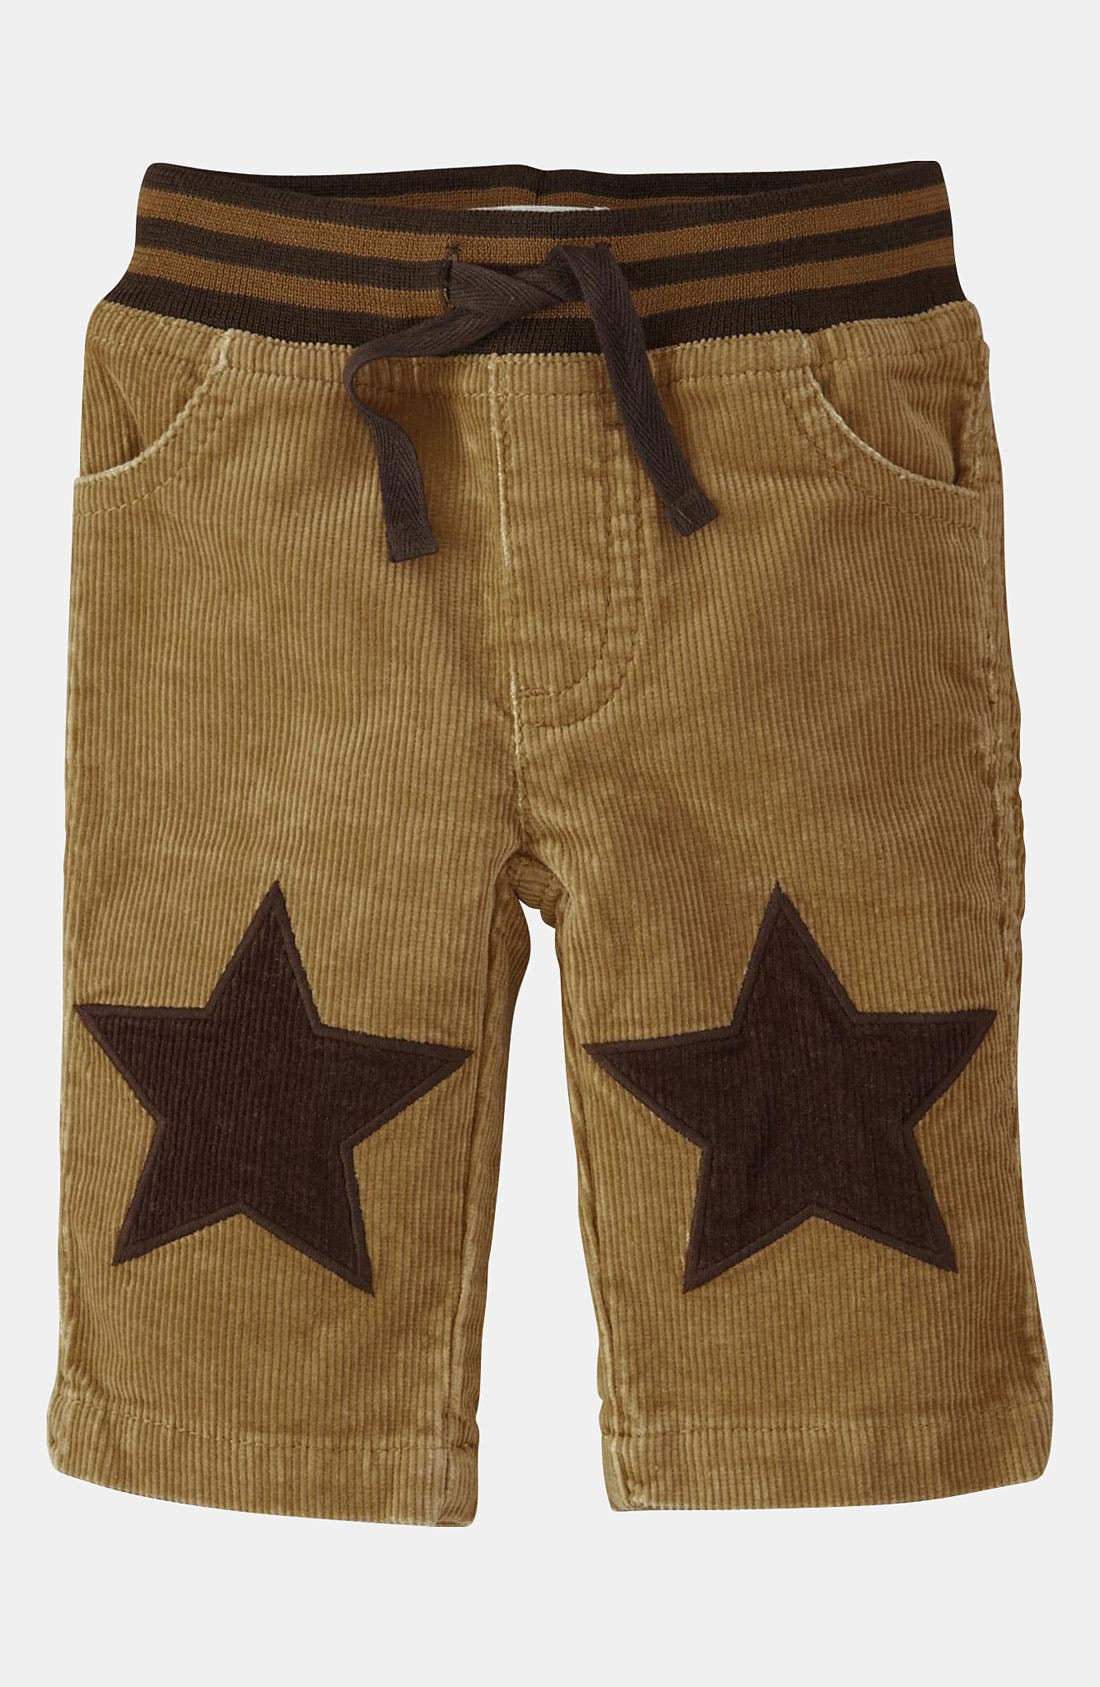 Alternate Image 1 Selected - Mini Boden 'Knee Patch' Jeans (Infant)